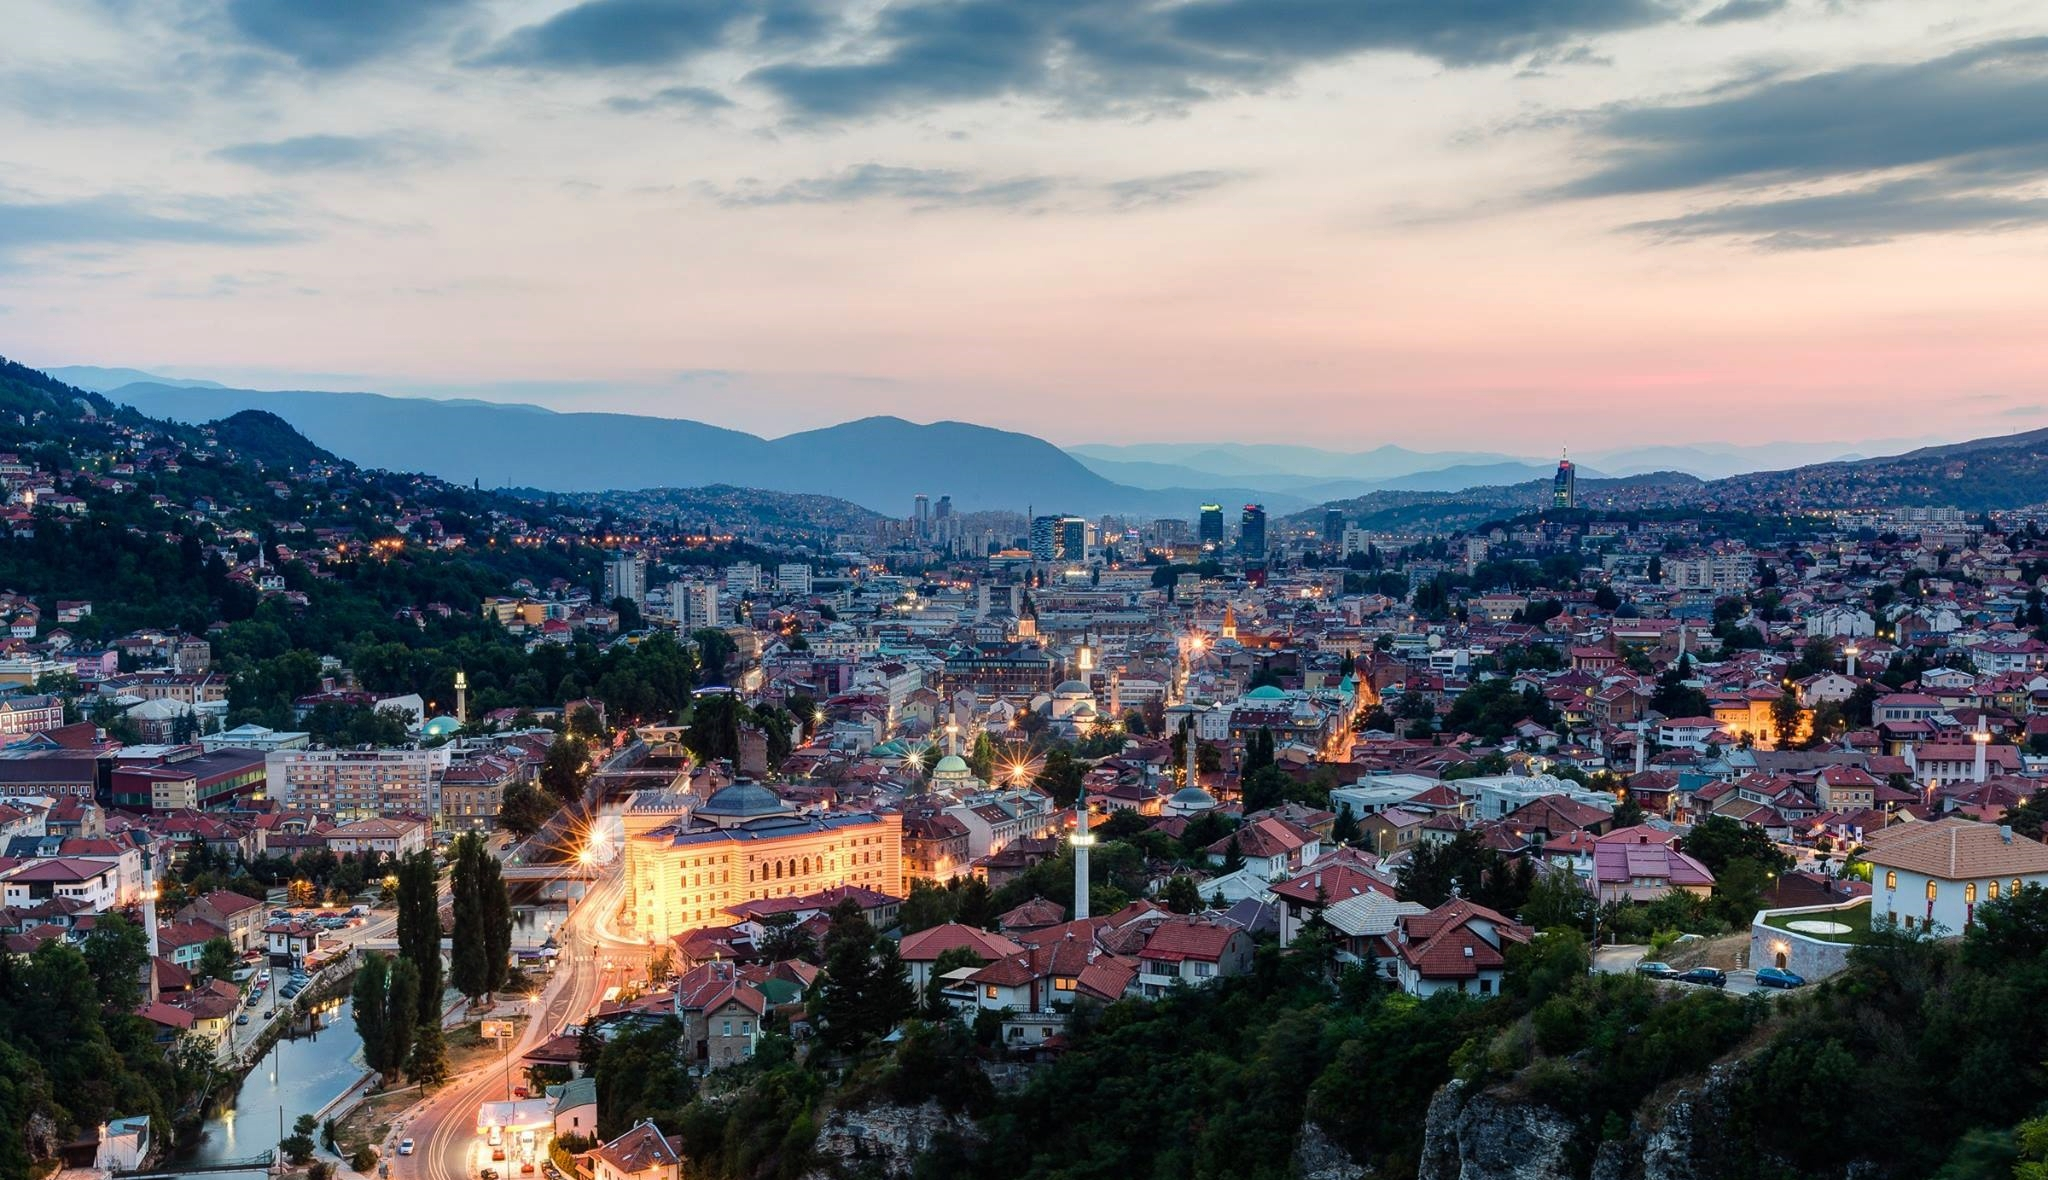 Summer route from Dubrovnik to discover Bosnia and Montenegro. Visit Ostrog monastery, Sarajevo, Mostar, Trebinje. Meet fortresses, monasteries, old towns and cave.